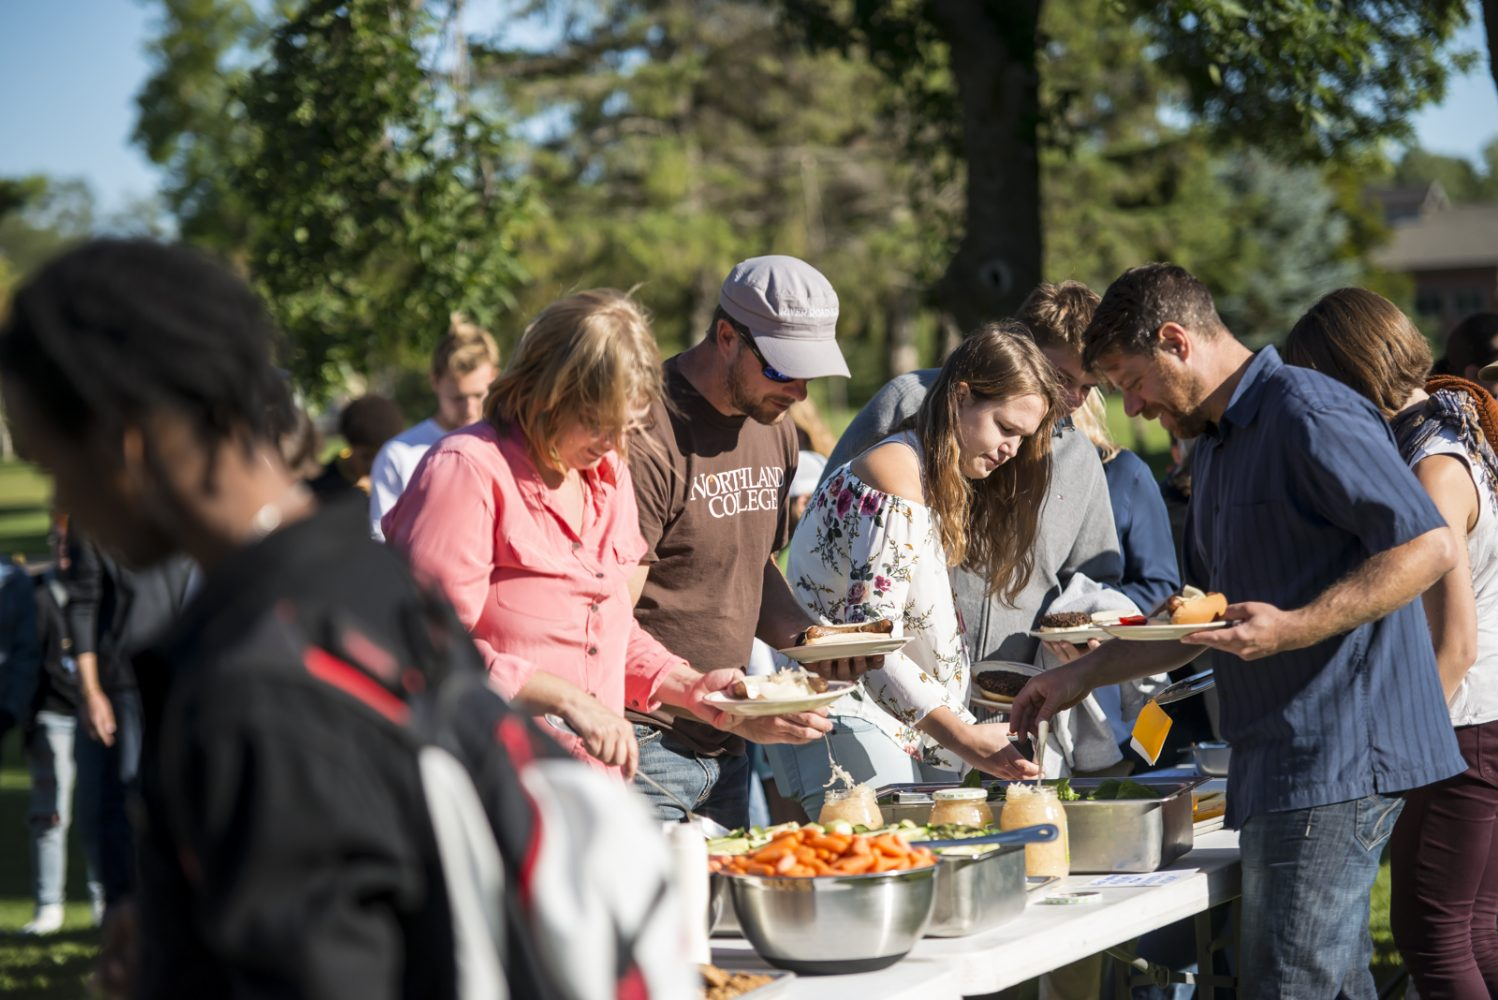 Northland College staff and faculty get dinner at the Everybody Party on campus.